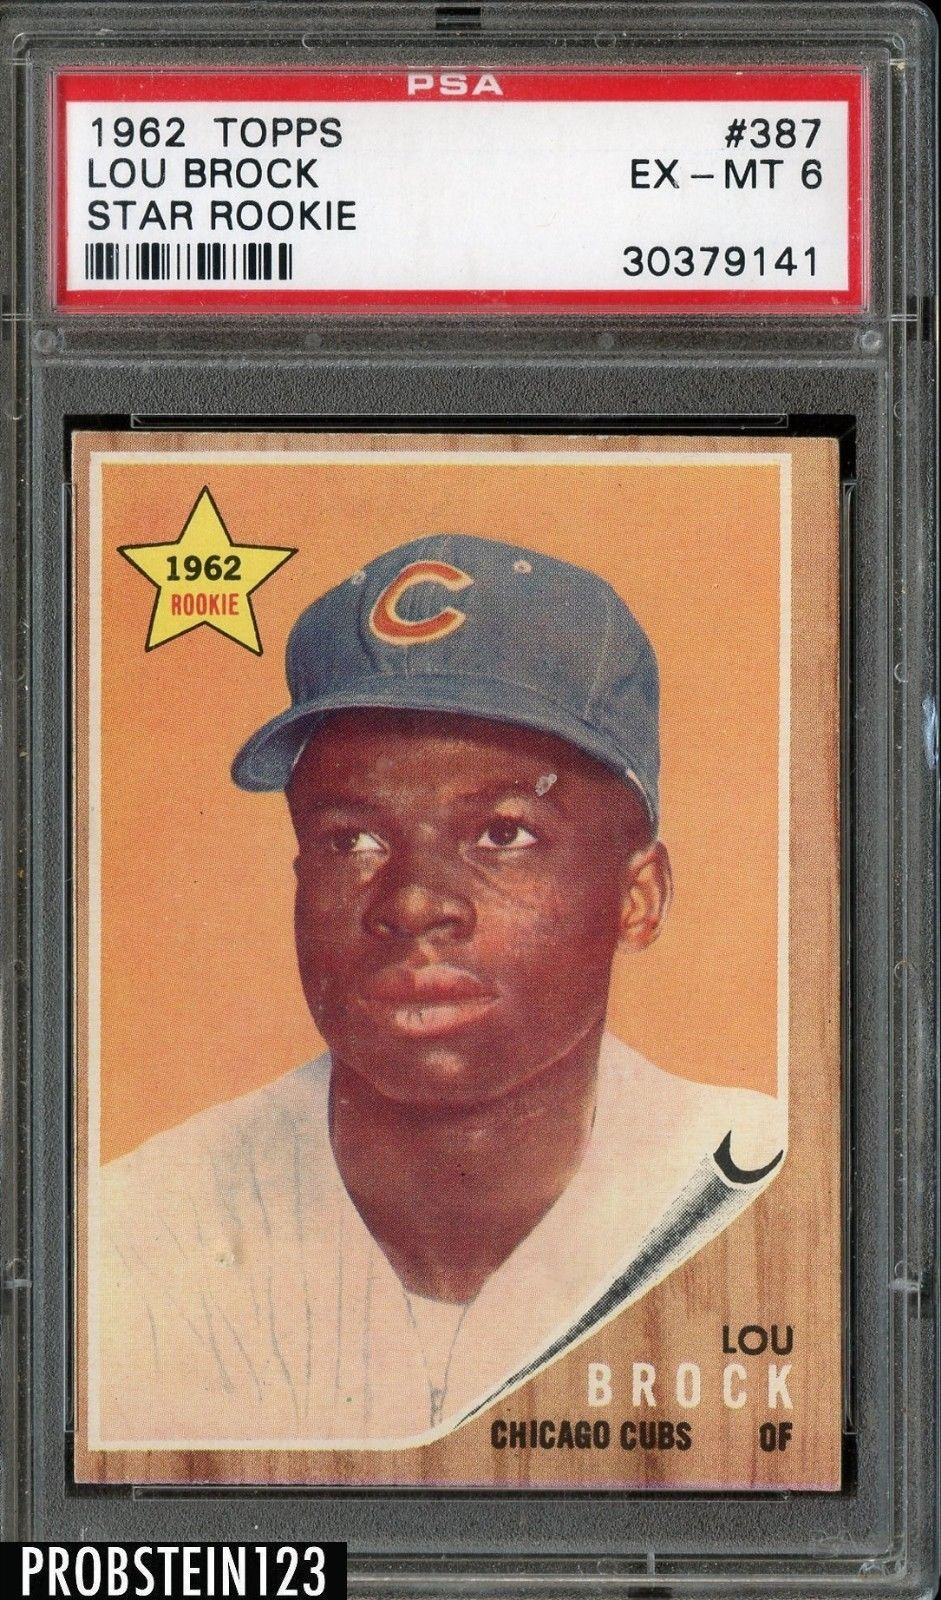 1962 Topps Star Rookie 387 Lou Brock Cubs Rc Hof Psa 6 Ex Mt Baseballcards With Images Baseball Cards Chicago Cubs Chicago Cubs Baseball